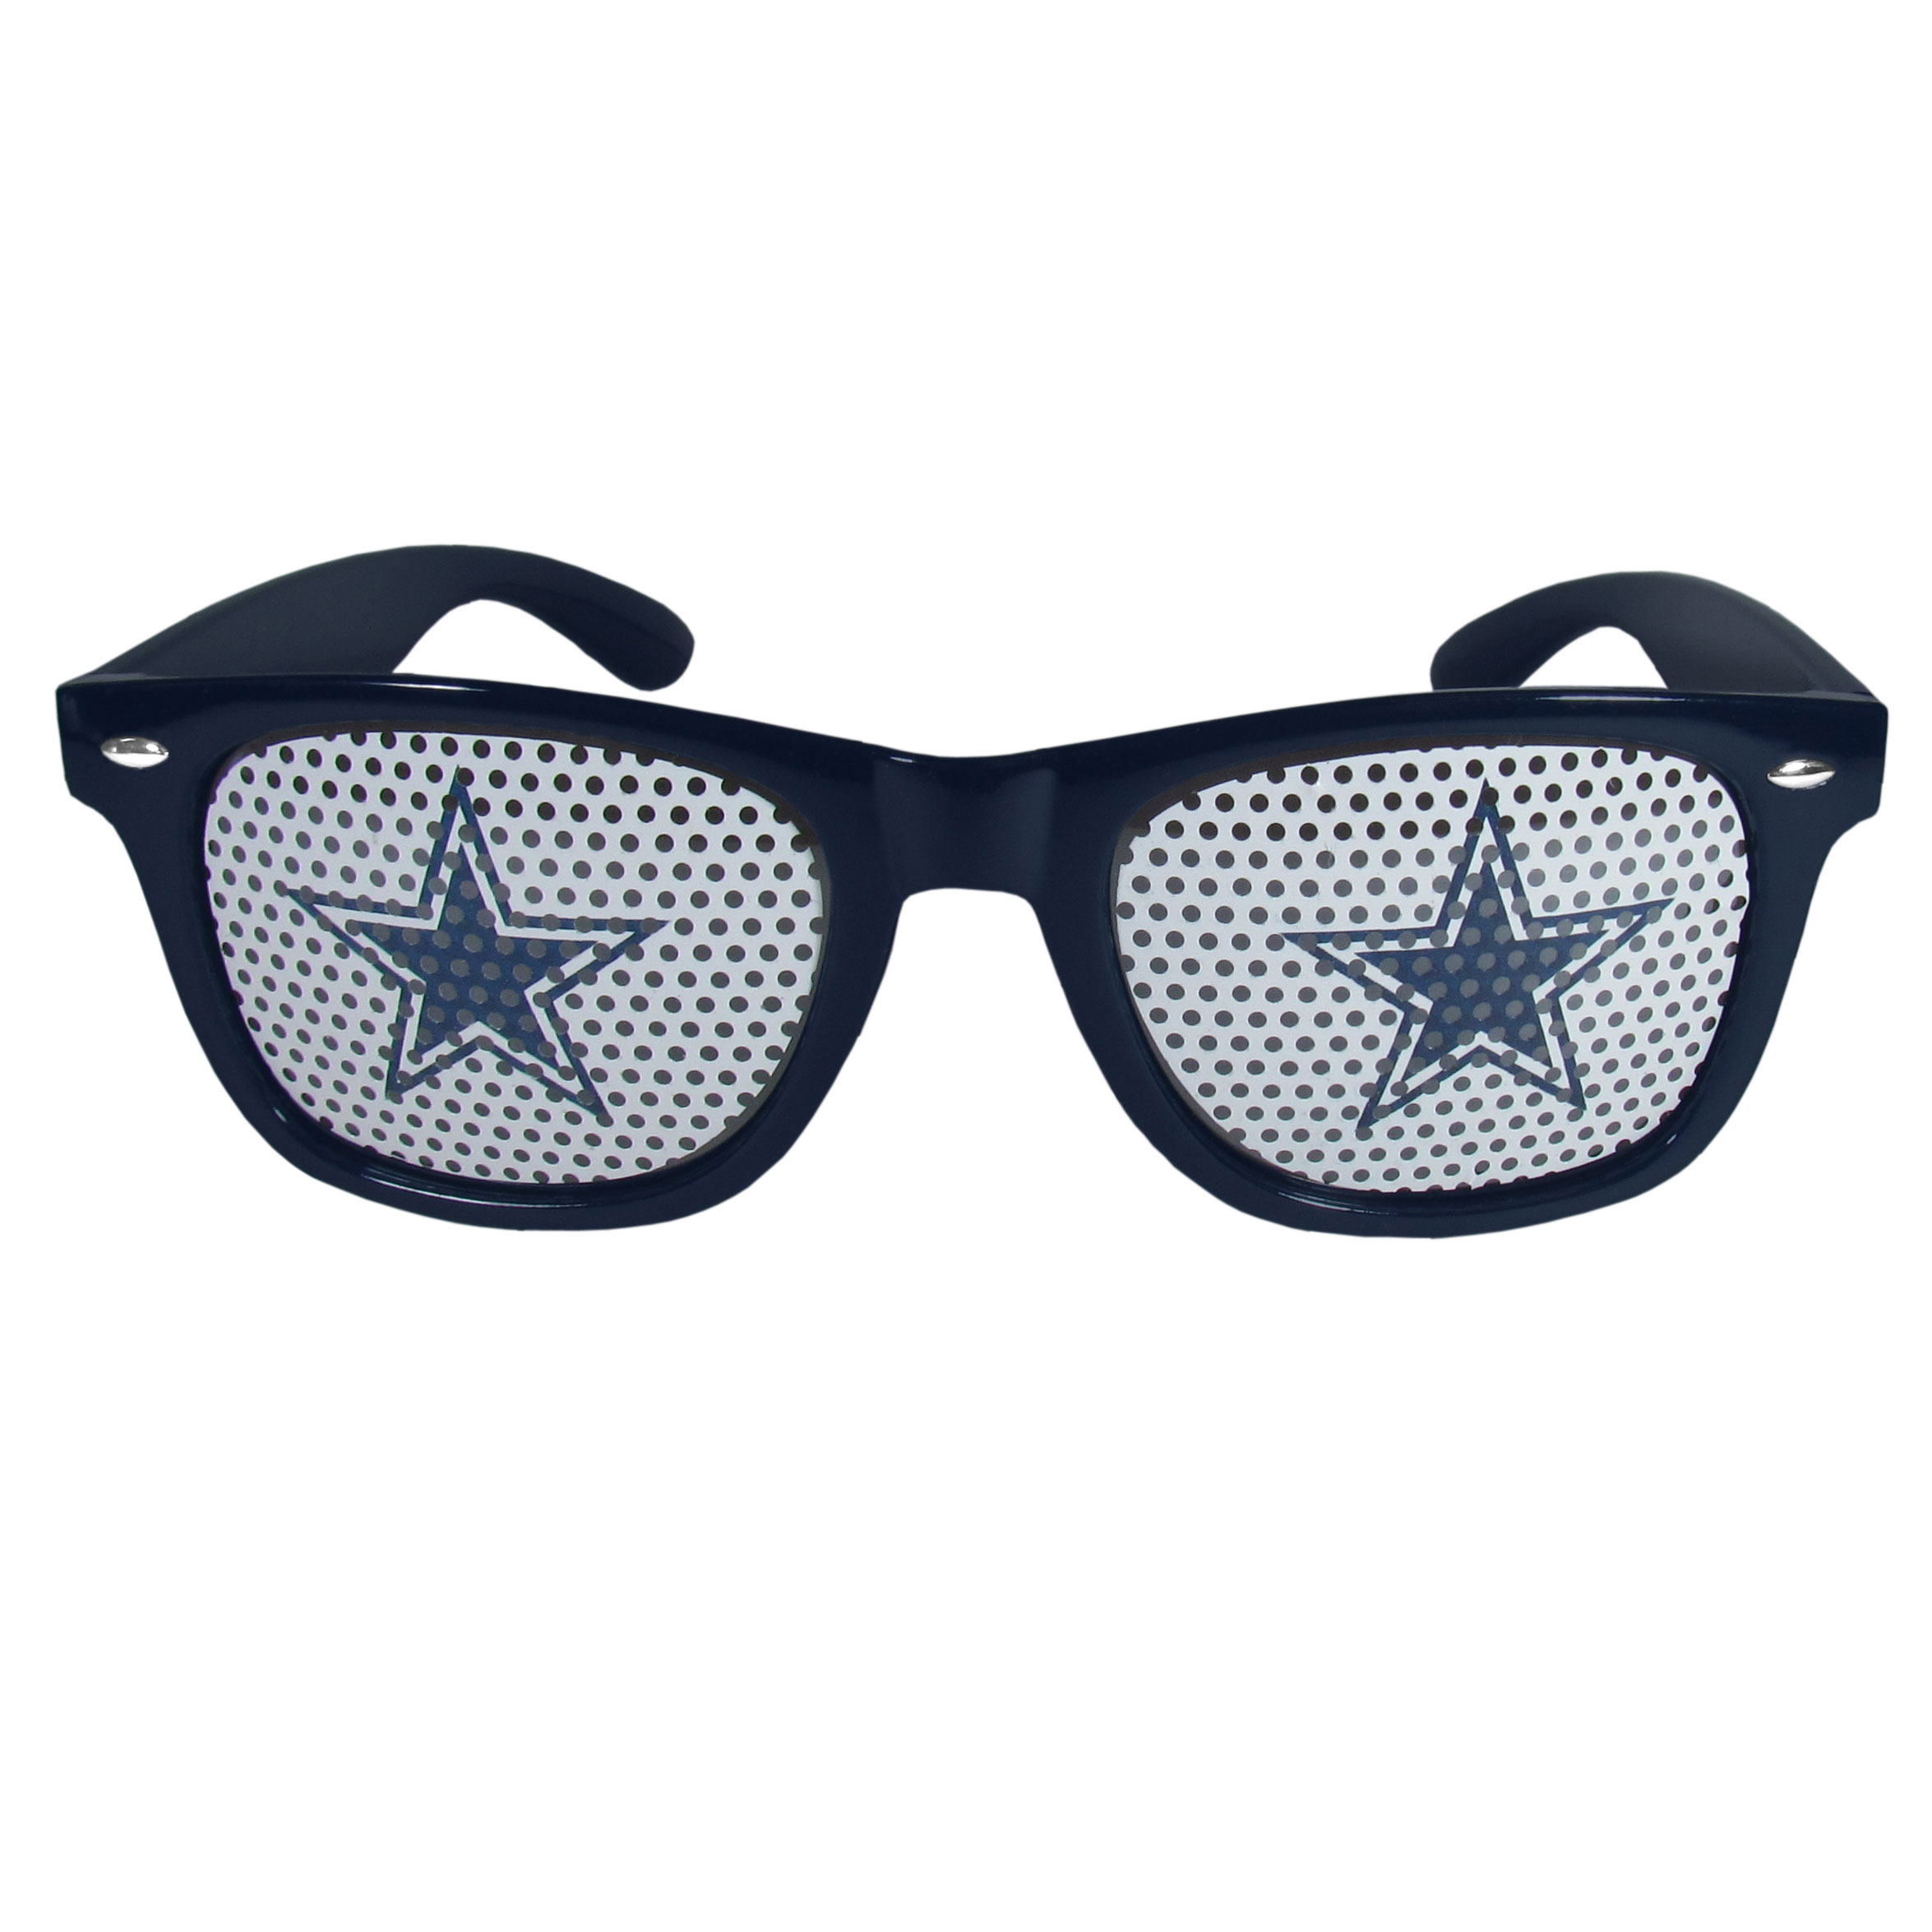 Dallas Cowboys Game Day Shades - Our officially licensed game day shades are the perfect accessory for the devoted Dallas Cowboys fan! The sunglasses have durable polycarbonate frames with flex hinges for comfort and damage resistance. The lenses feature brightly colored team clings that are perforated for visibility.